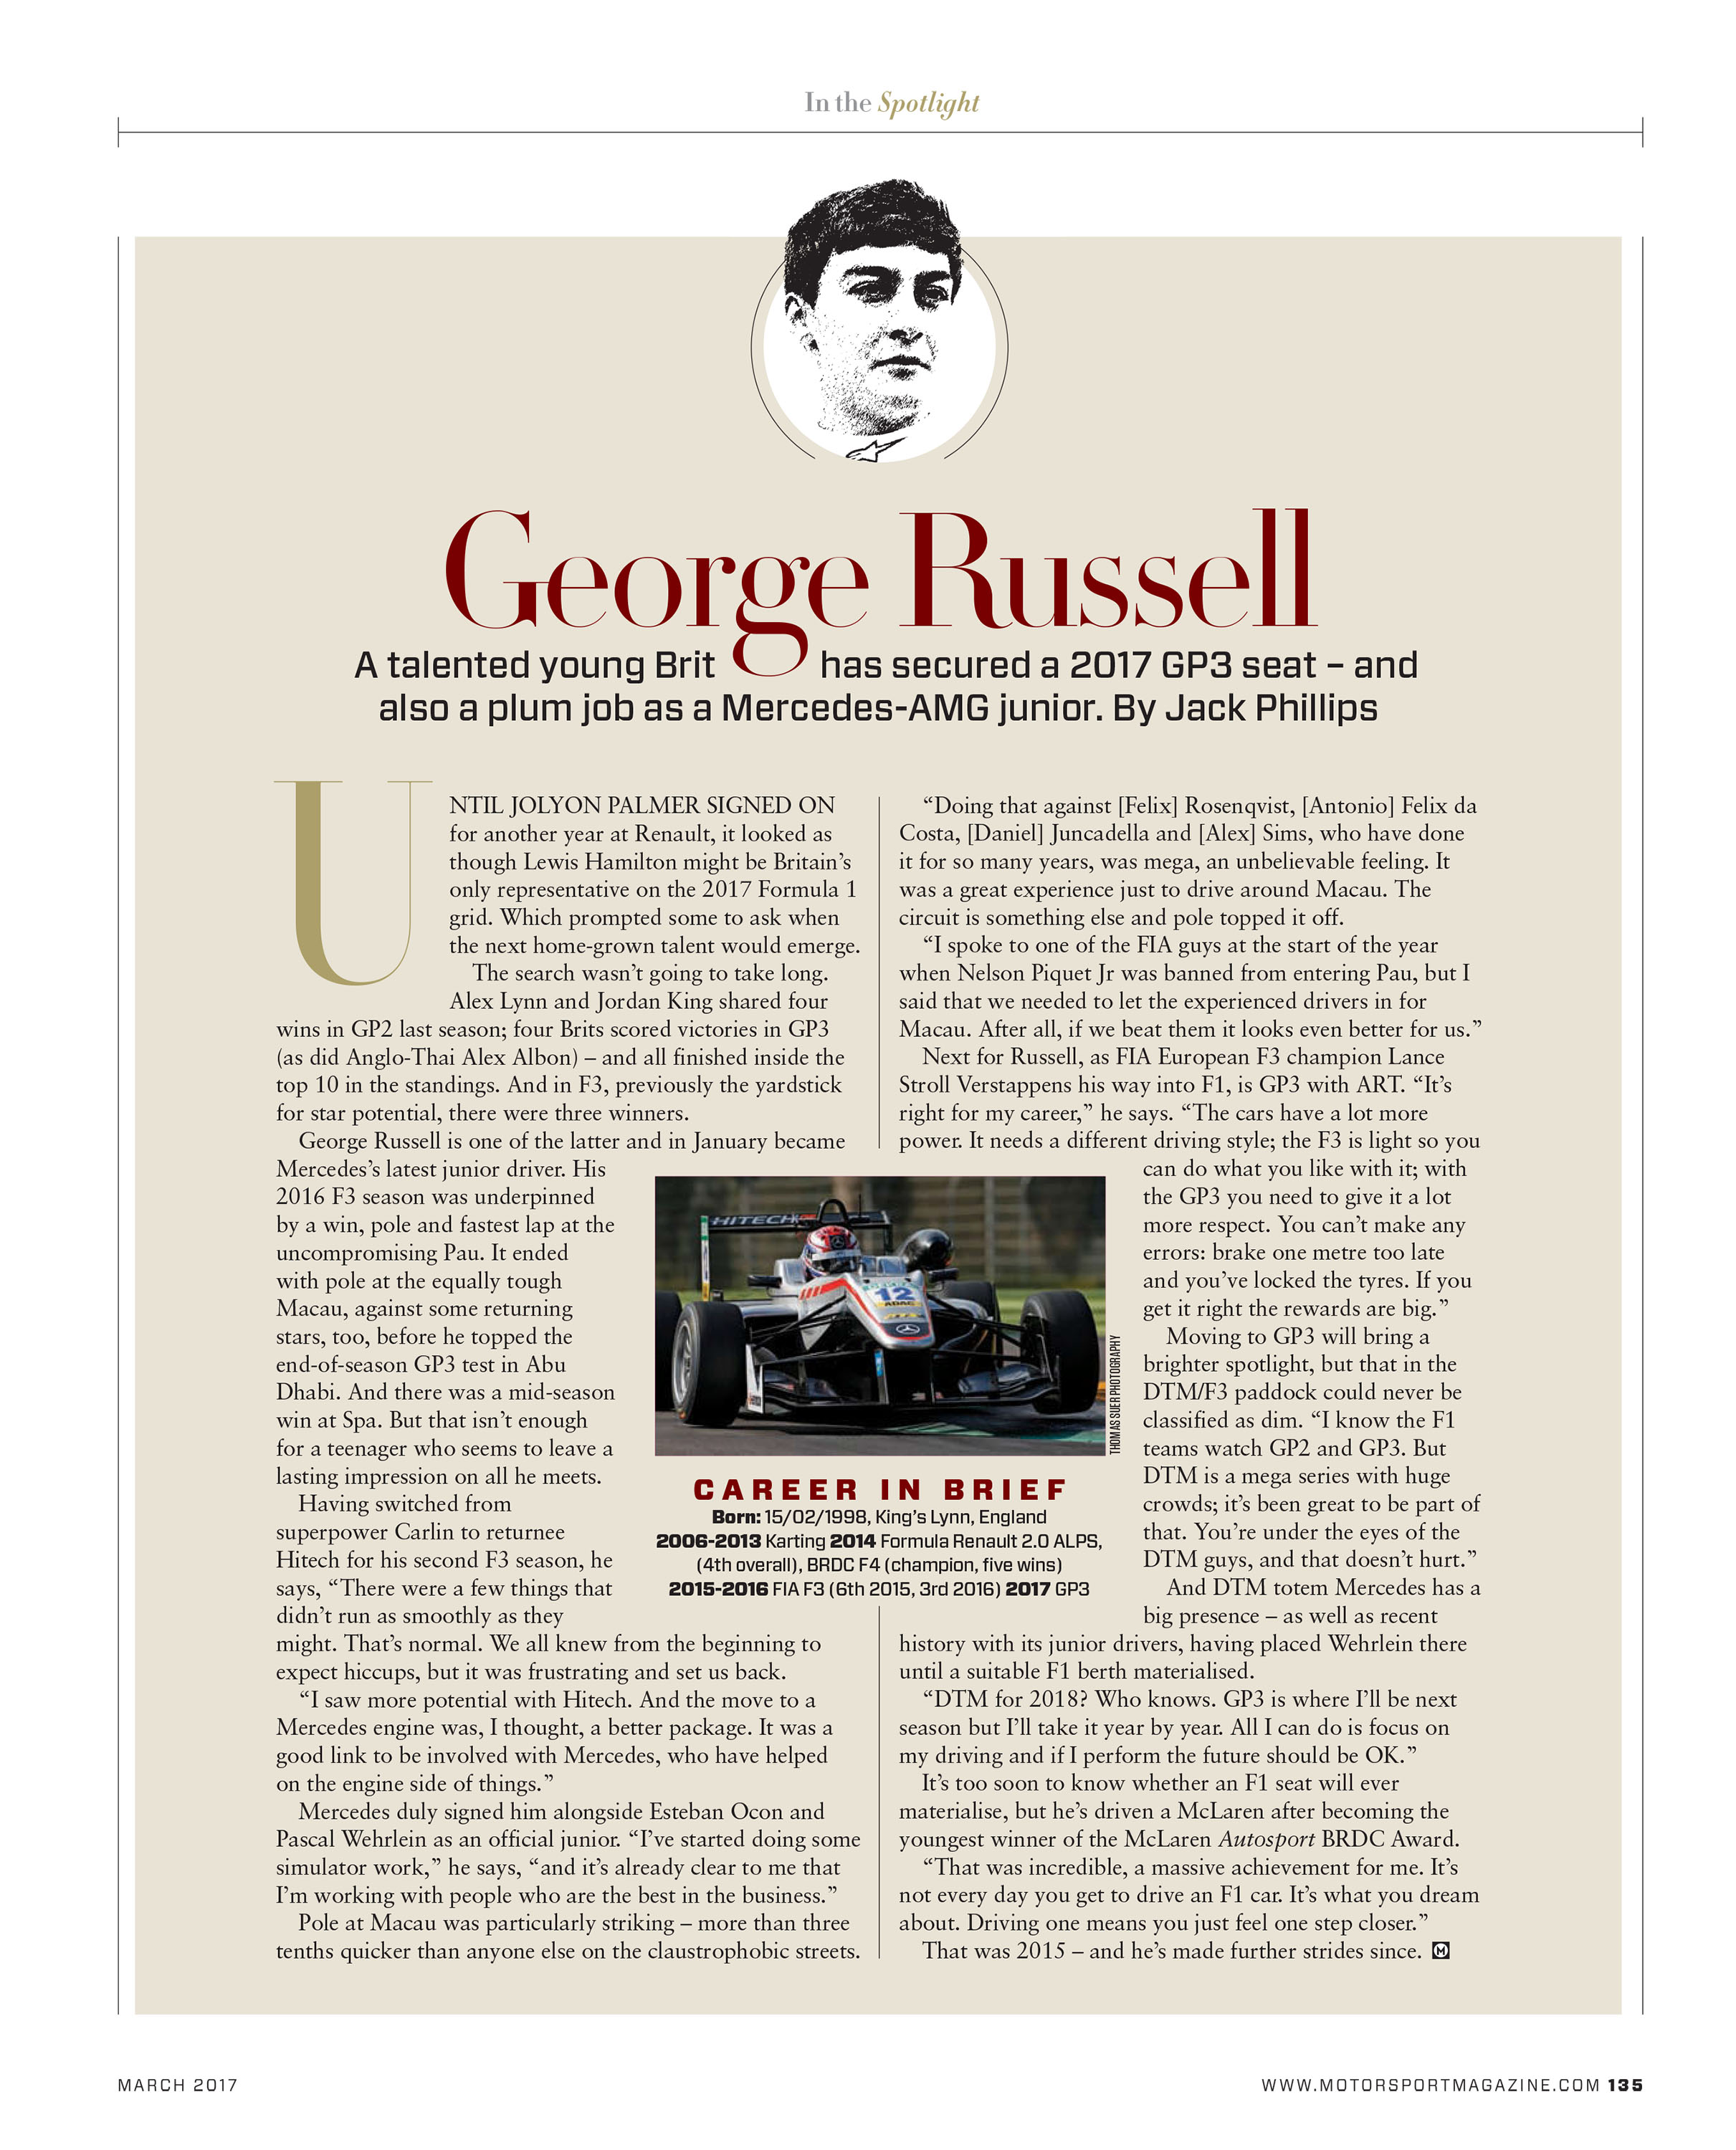 In the spotlight: George Russell image